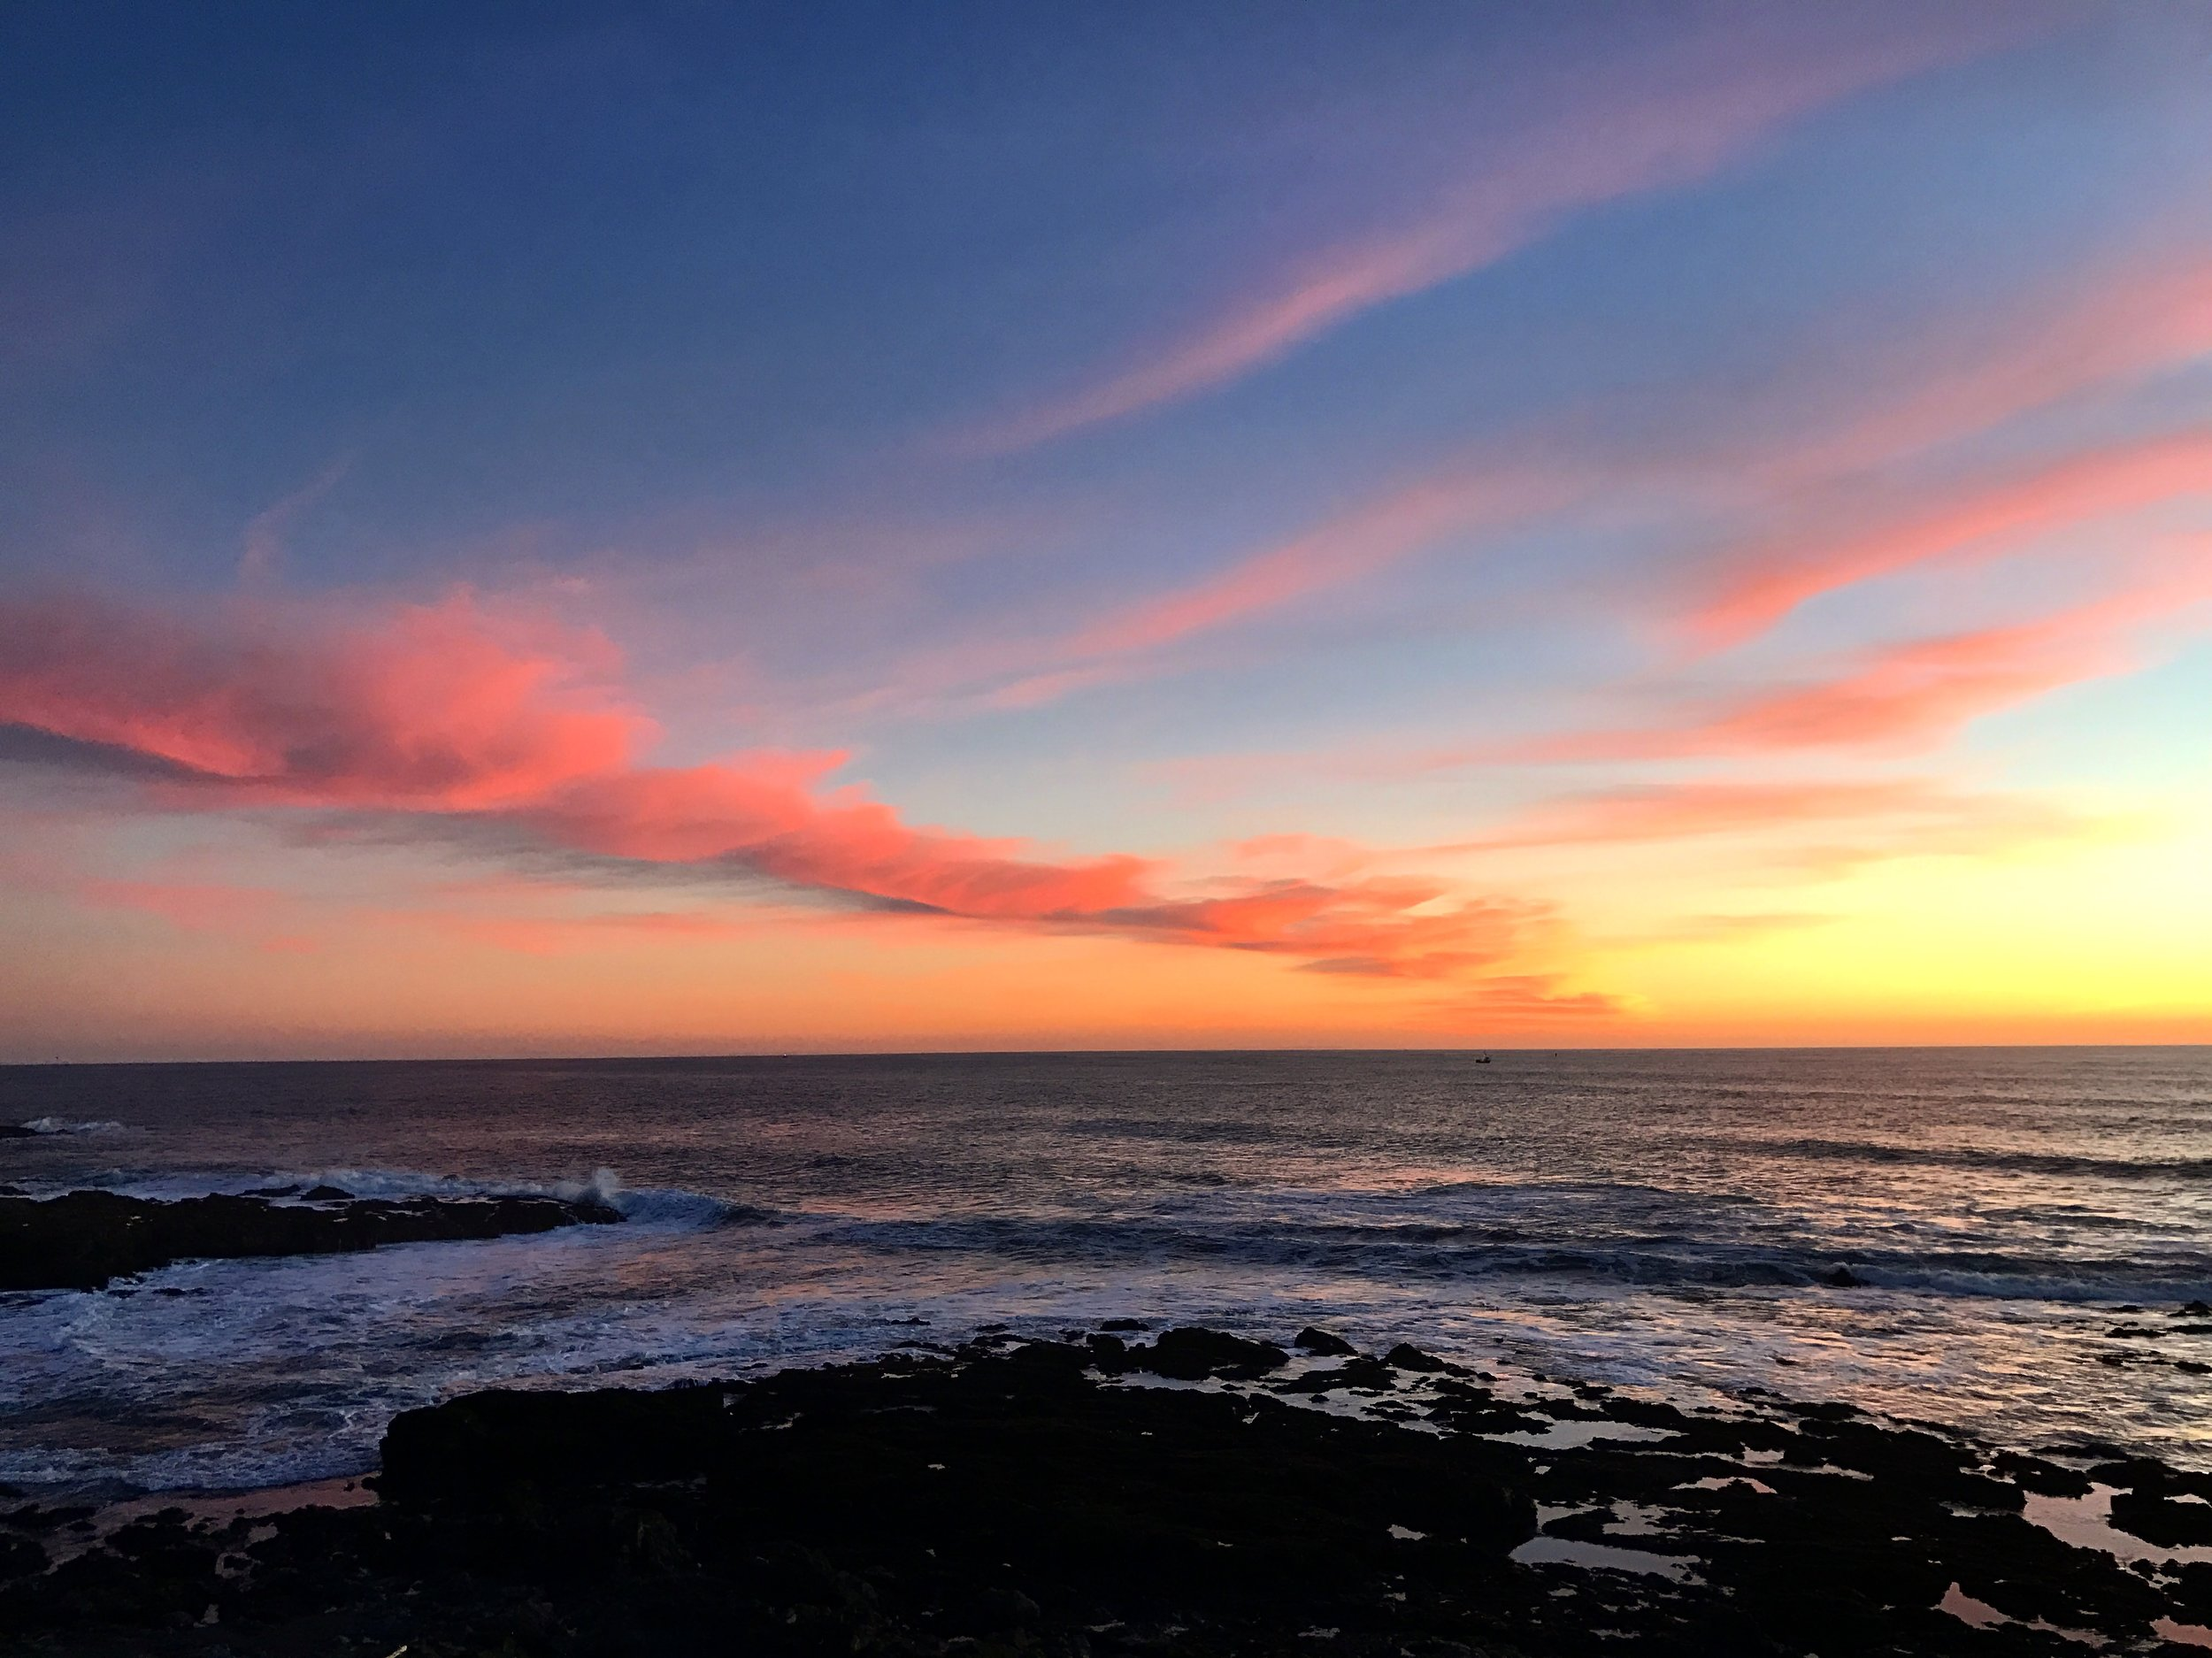 Sunset at Shelter Cove in California